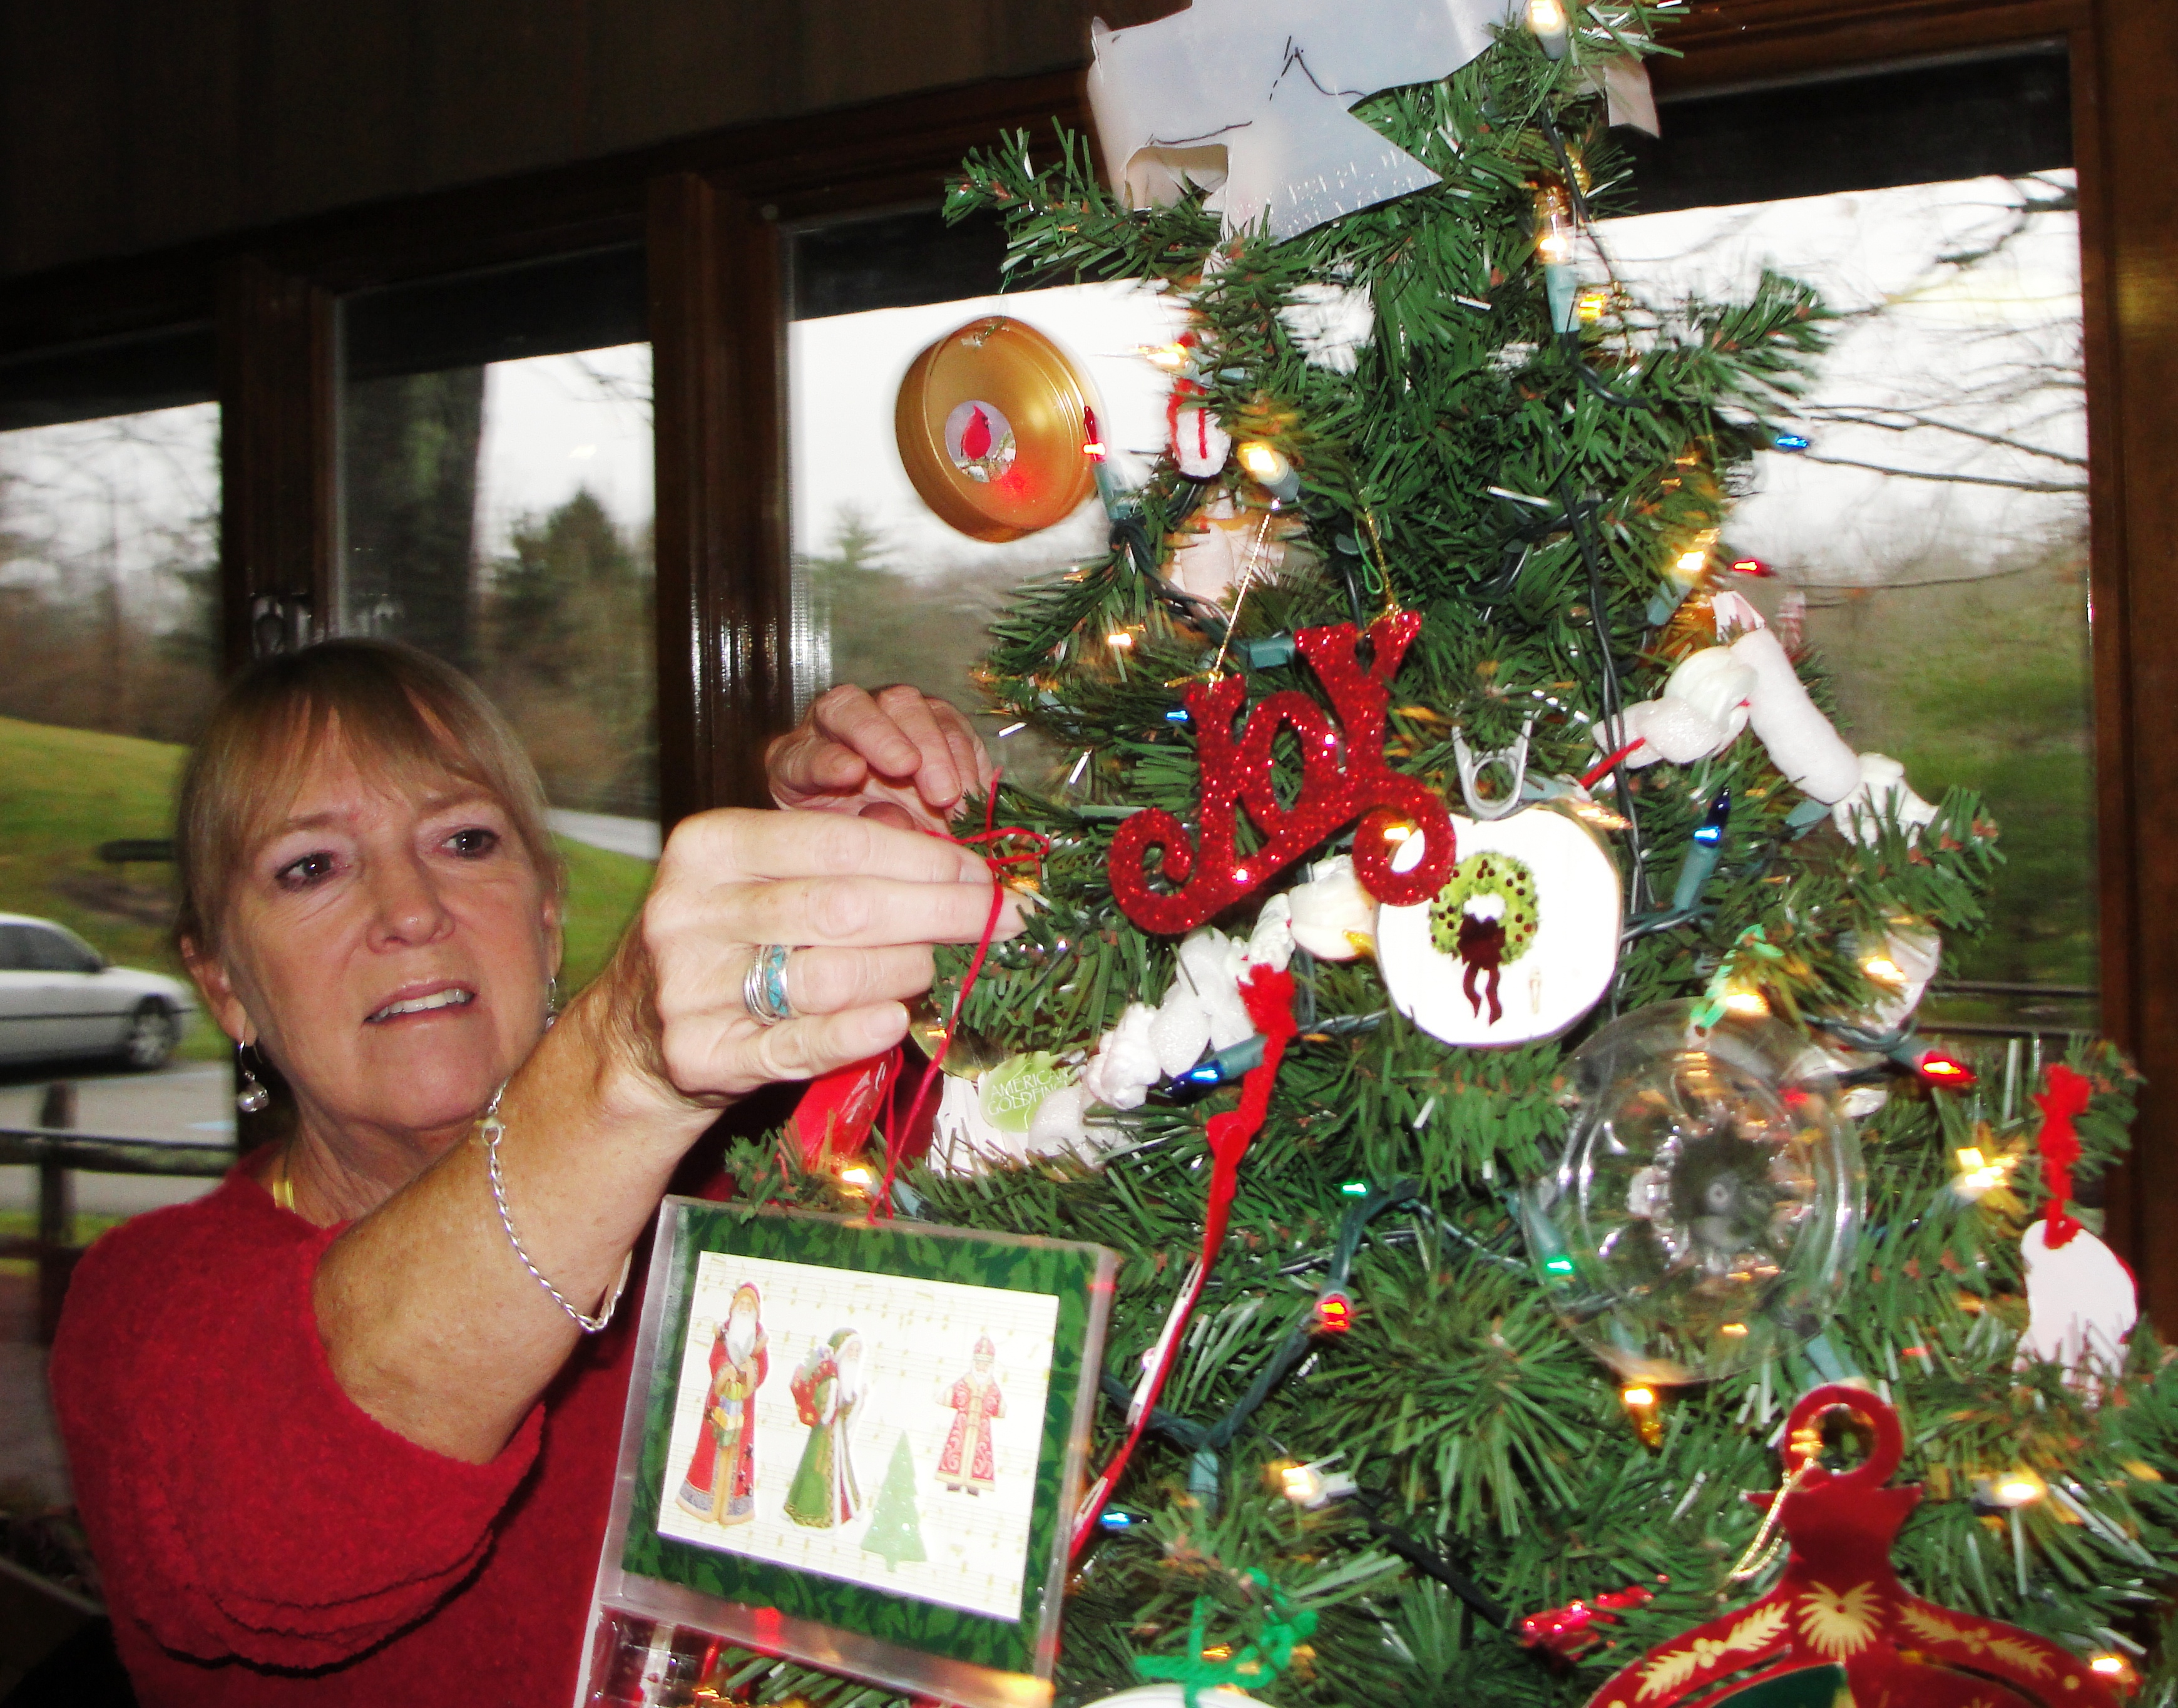 Indian Hill Garden Club Transforms Trash To Decorate